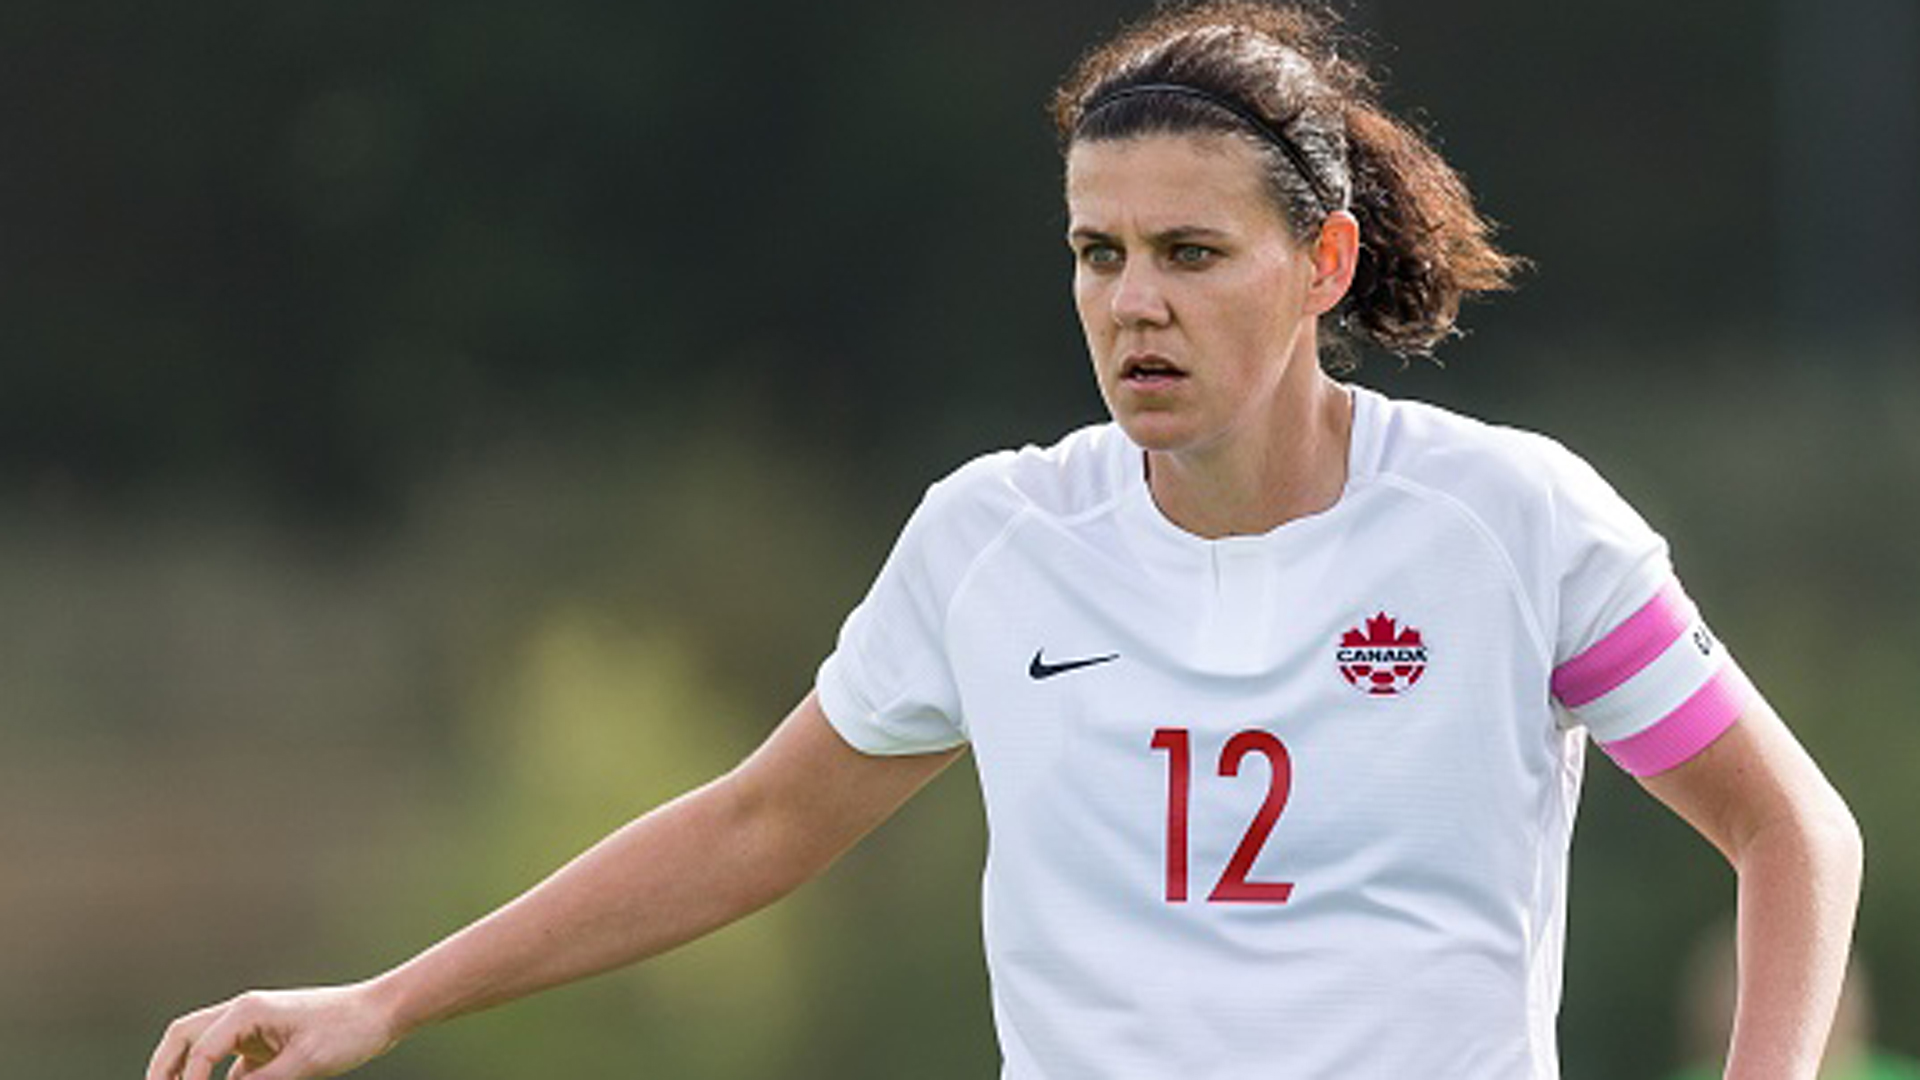 Sinclair aims to cement herself as best scorer of all-time at Women's World Cup